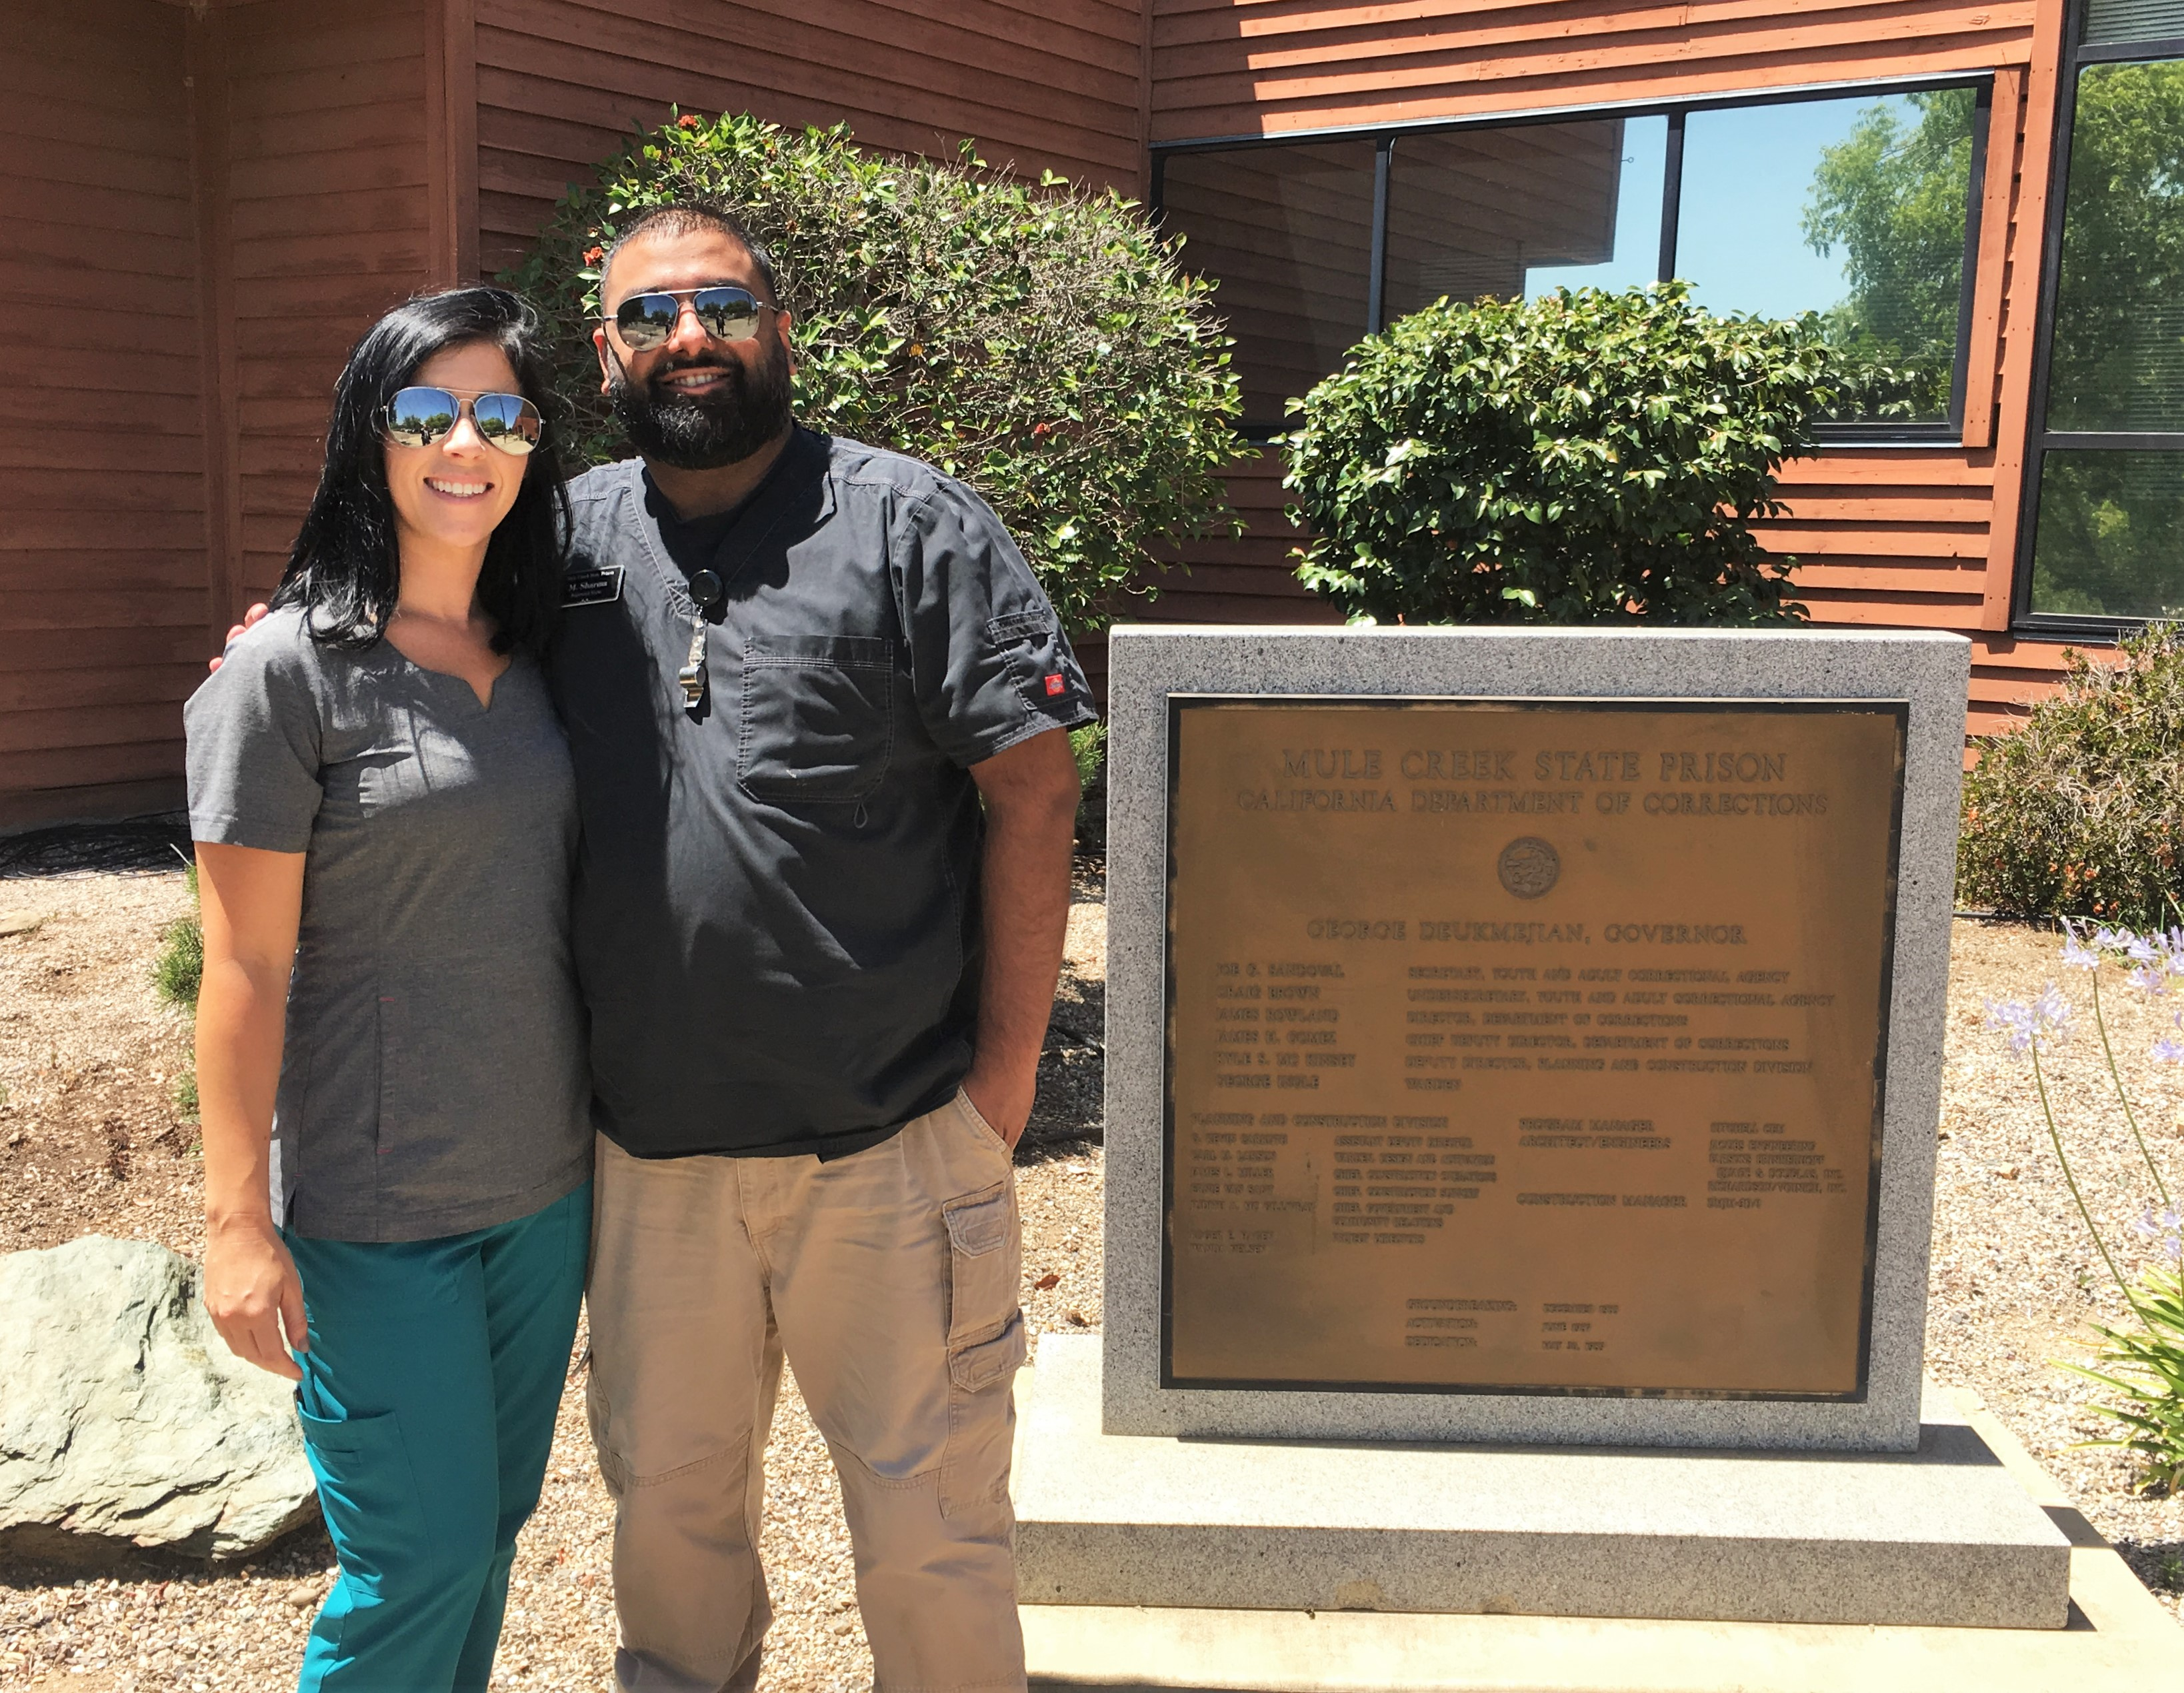 Woman in scrubs and man in regular clothing stand in front of the plaque for Mule Creek State Prison.